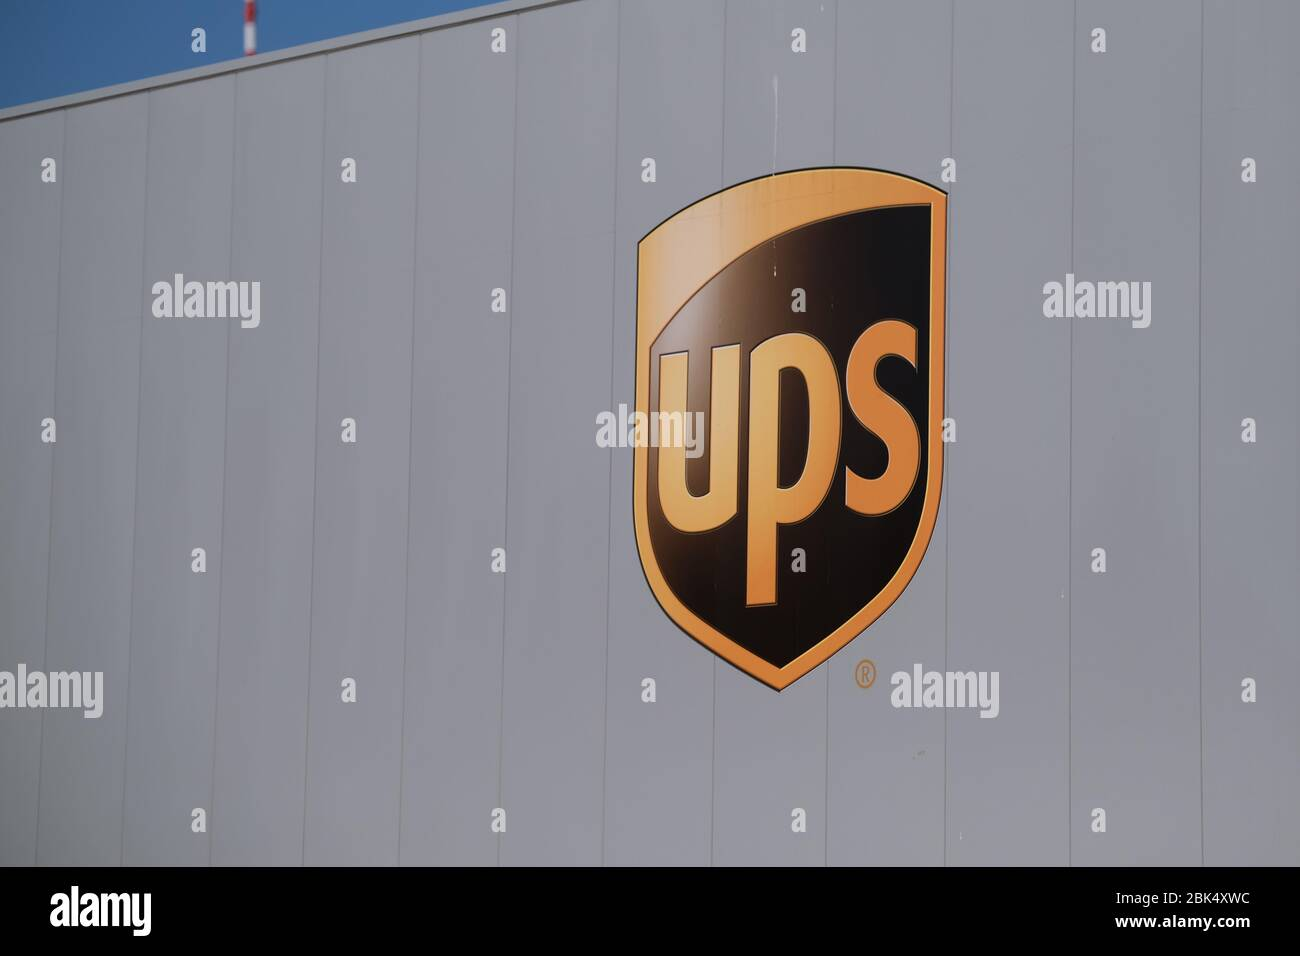 A Logo Of United Parcel Service Inc Ups Is Pictured On Delivery Truck Trailer On April 26 2020 In Katwijk Netherlands Credit Yuriko Nakao Aflo Alamy Live News Stock Photo 355994728 Alamy